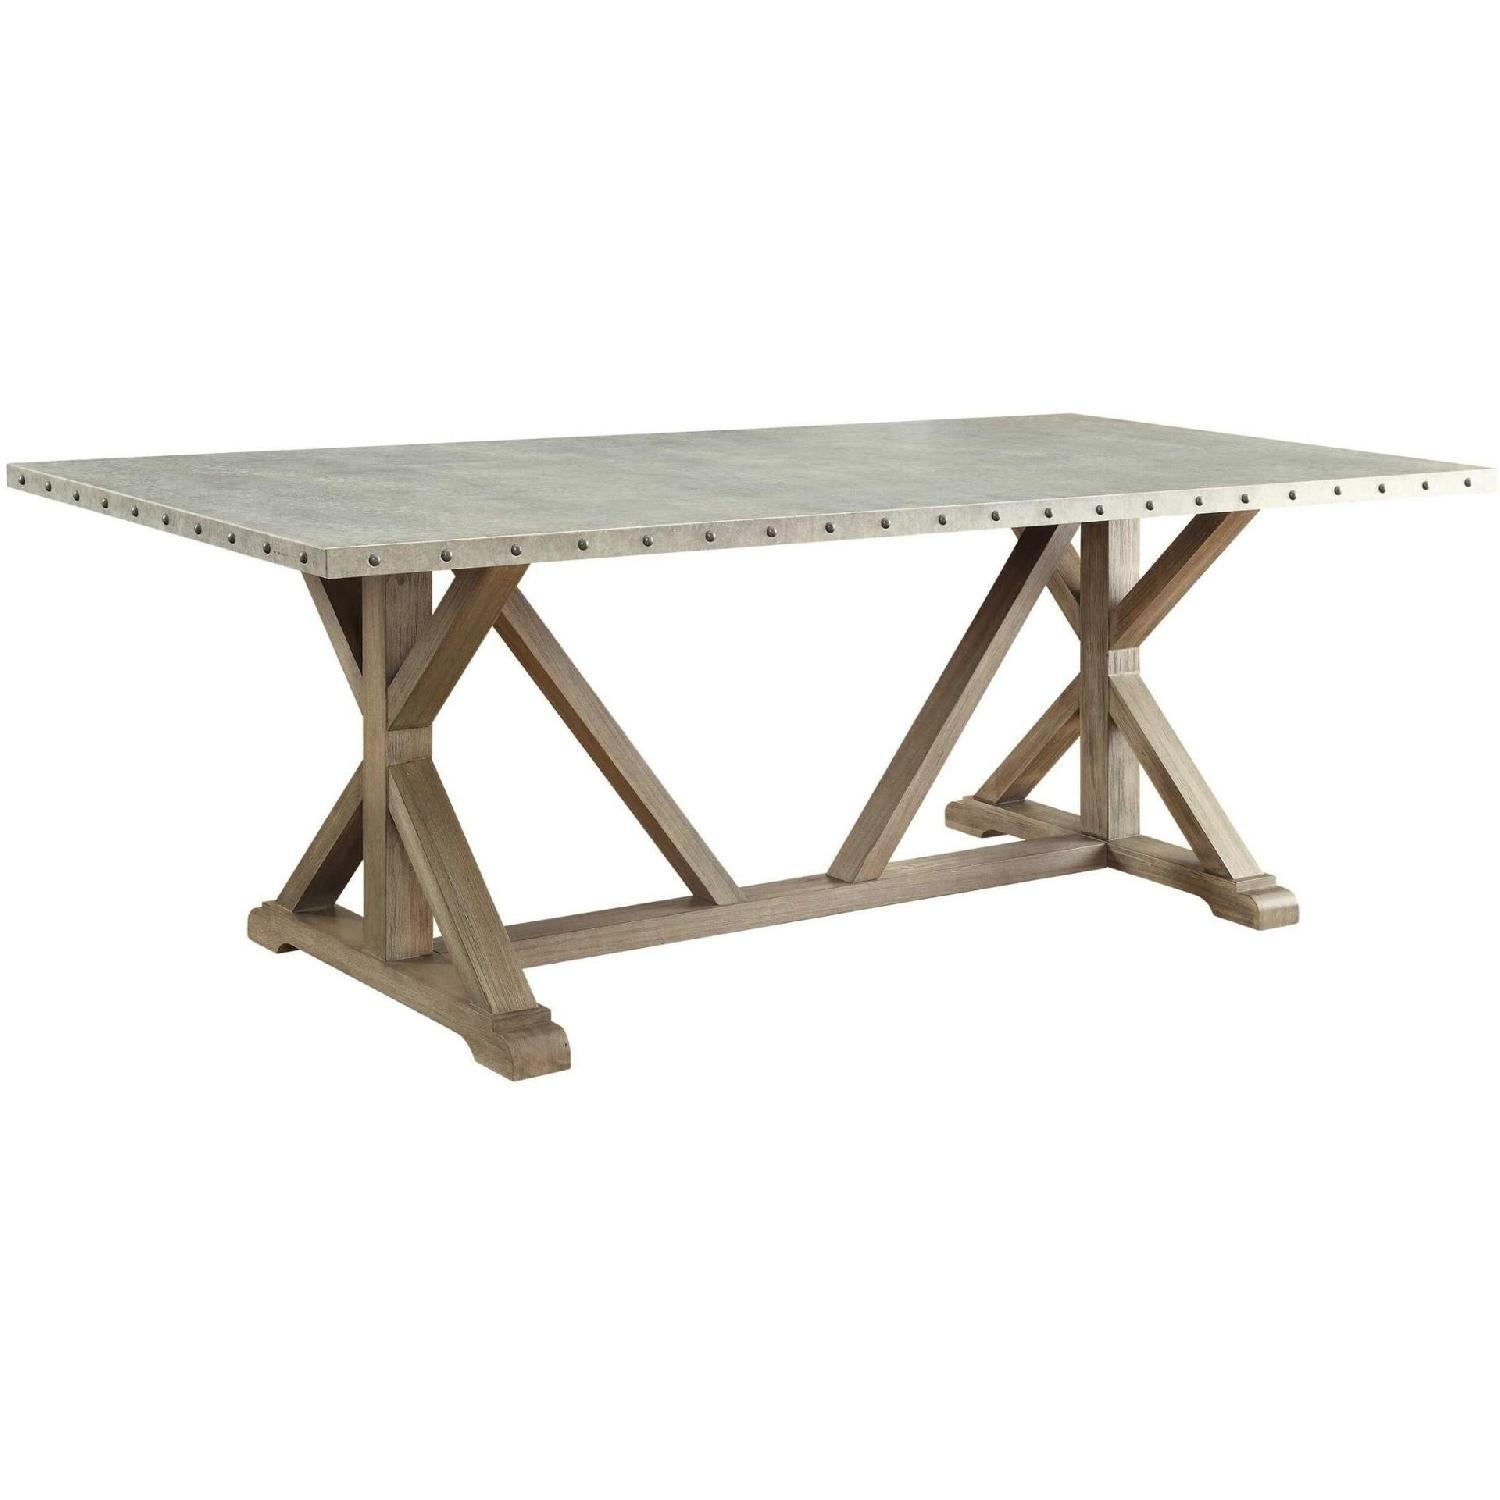 Industrial Vintage Style Dining Table w/ Handcrafted Top - image-4